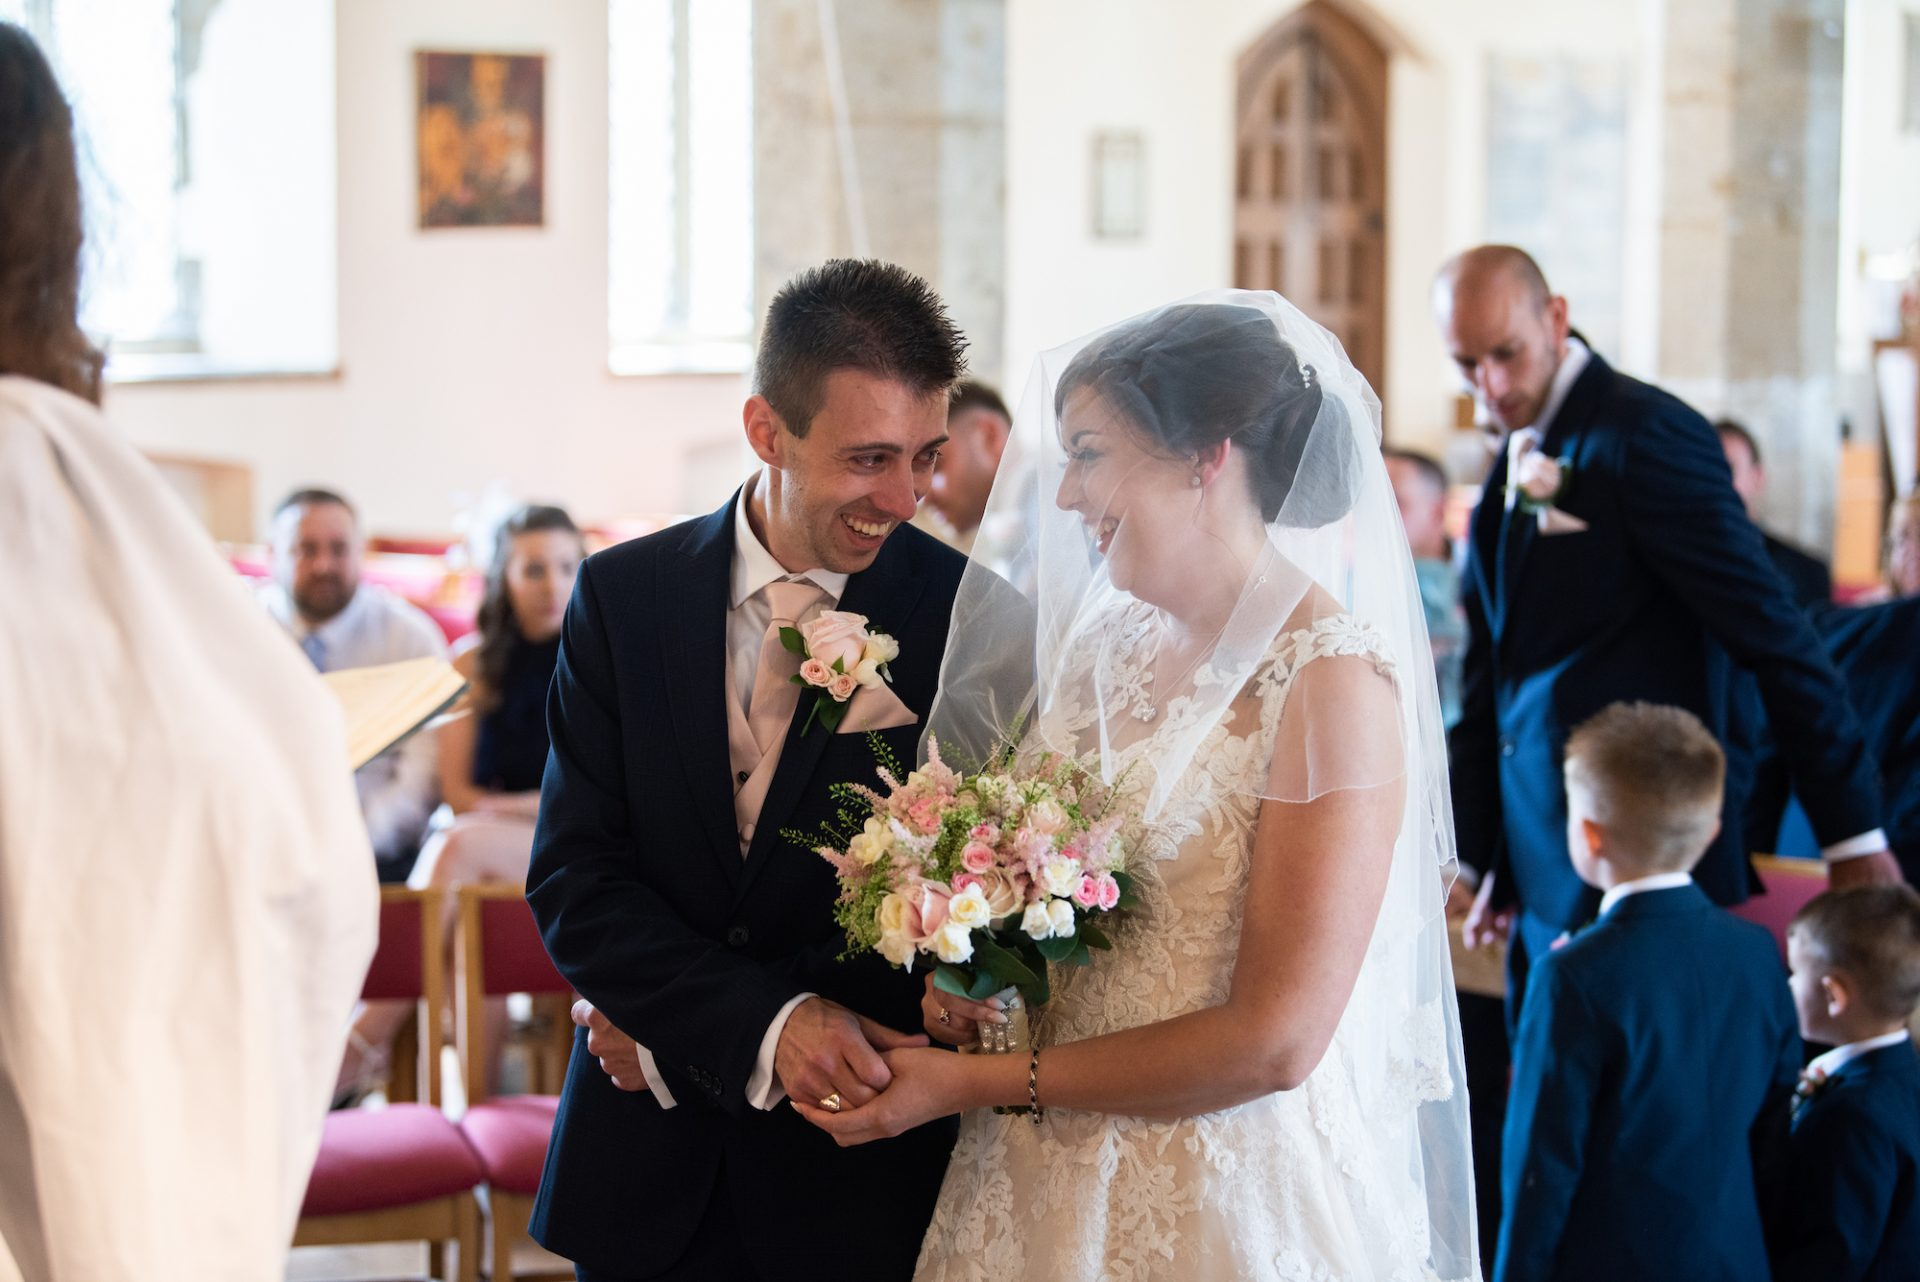 Abbie and Bretts Wedding at Chatteris Parish Church - photography by Ryan Jarvis - film by Veiled Productions - Old Hall Ely Wedding Videographer